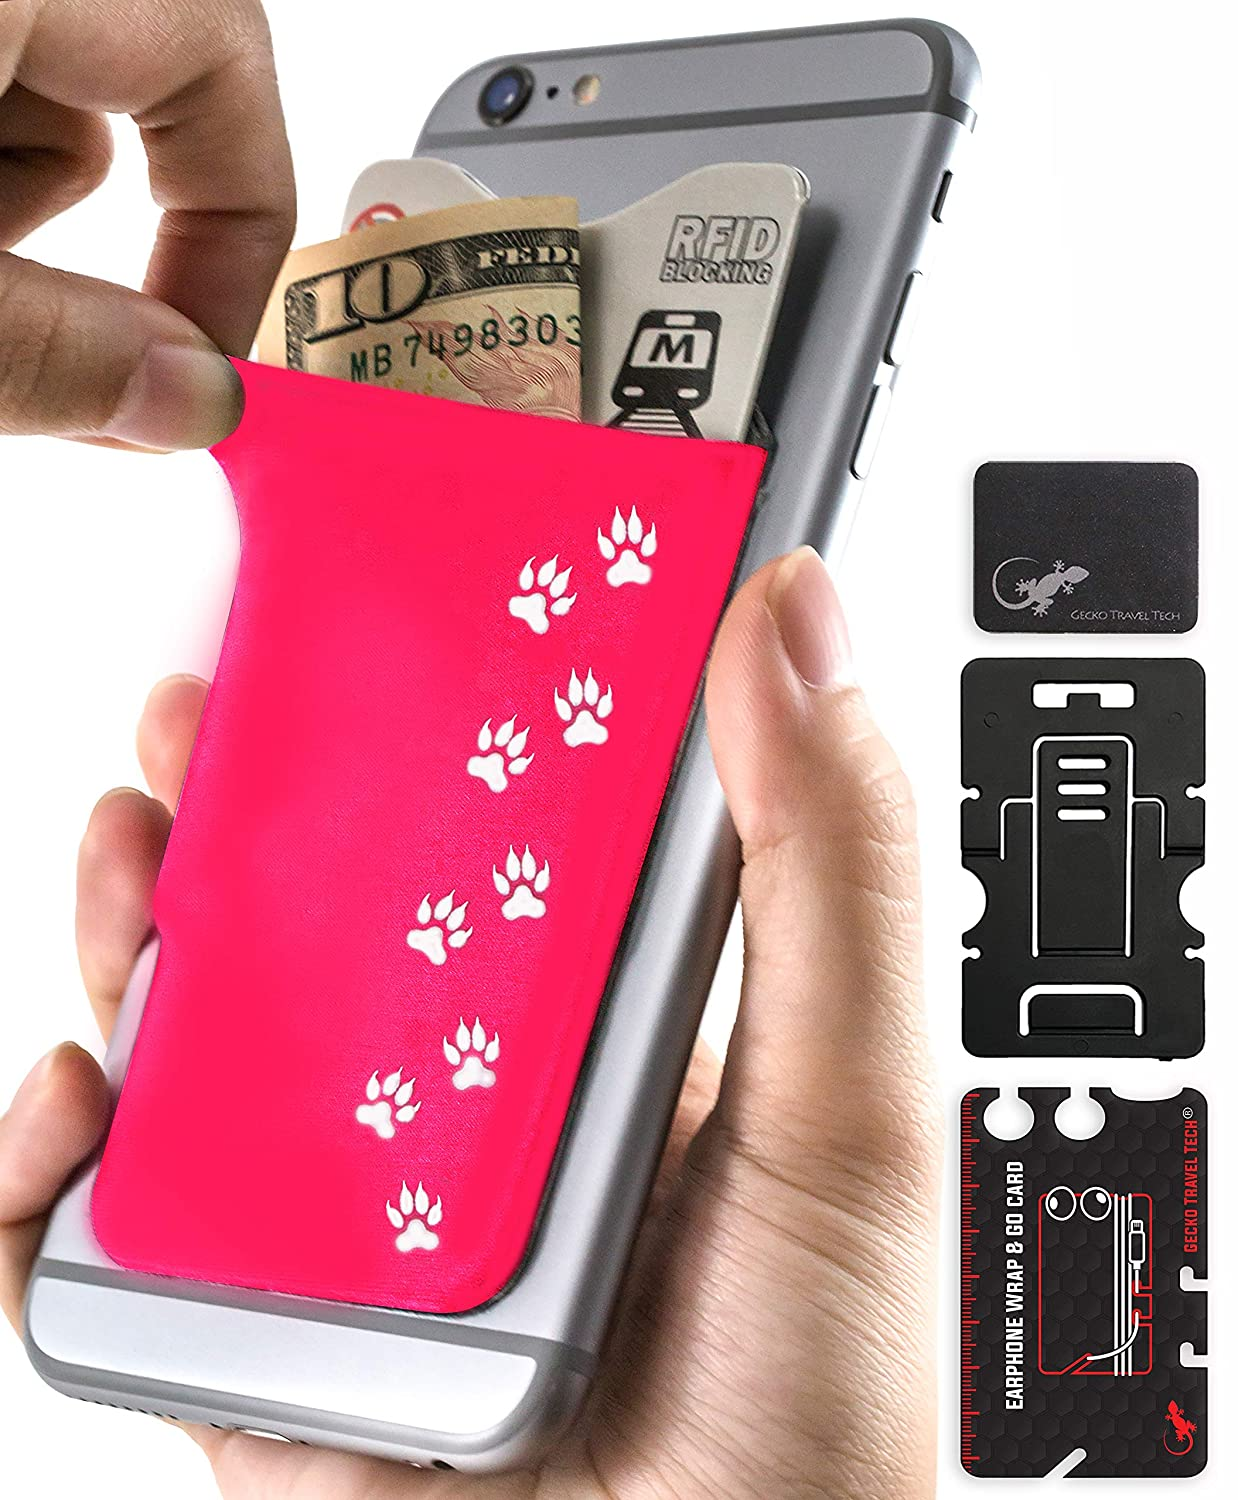 free shipping a8d4a b29c9 Sticky Card Holder for Phone - Mobile Phone Stand - Adhesive Card Holder -  Phone Pouch - Stick on Lycra Pocket by Gecko - Carry Credit Cards and Cash  ...